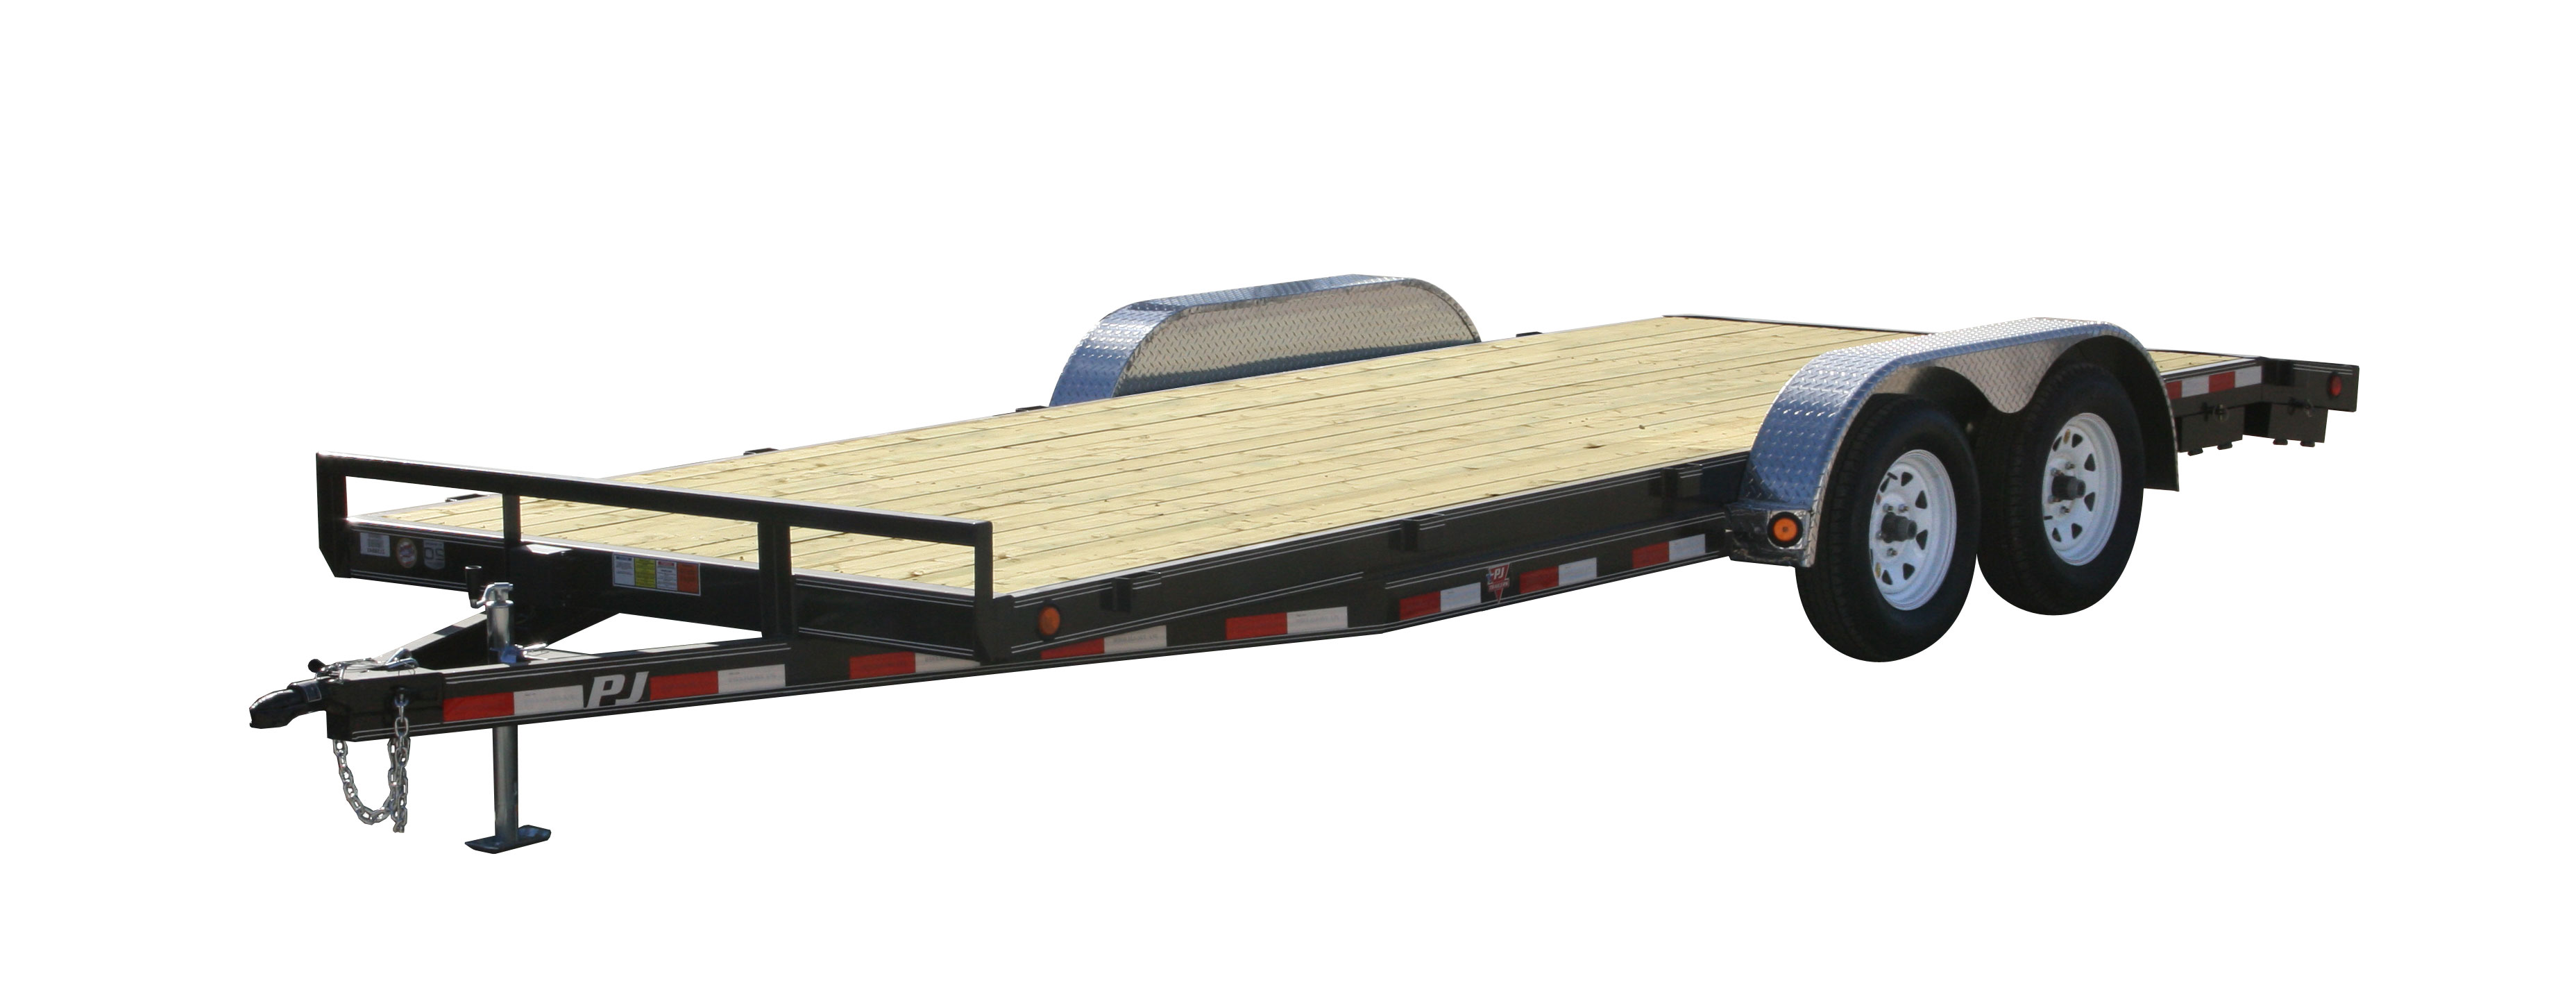 Pj Trailers 2018 5 Channel Carhauler C5 For Sale In South